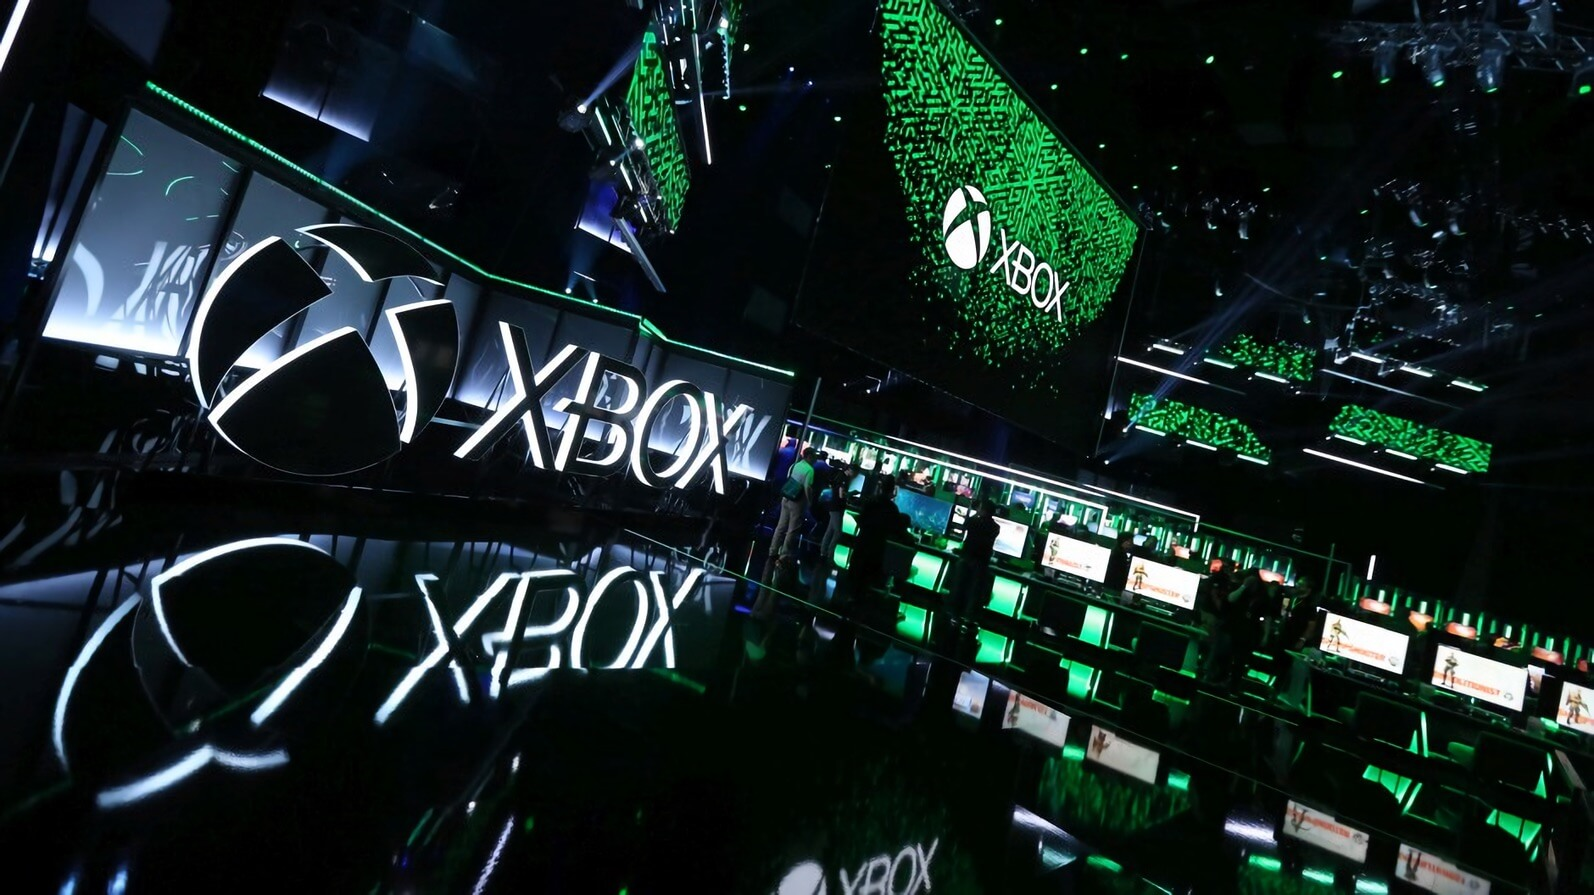 Microsoft Teases Xbox Scarlet Reveal in Hidden Codes - E3 2019